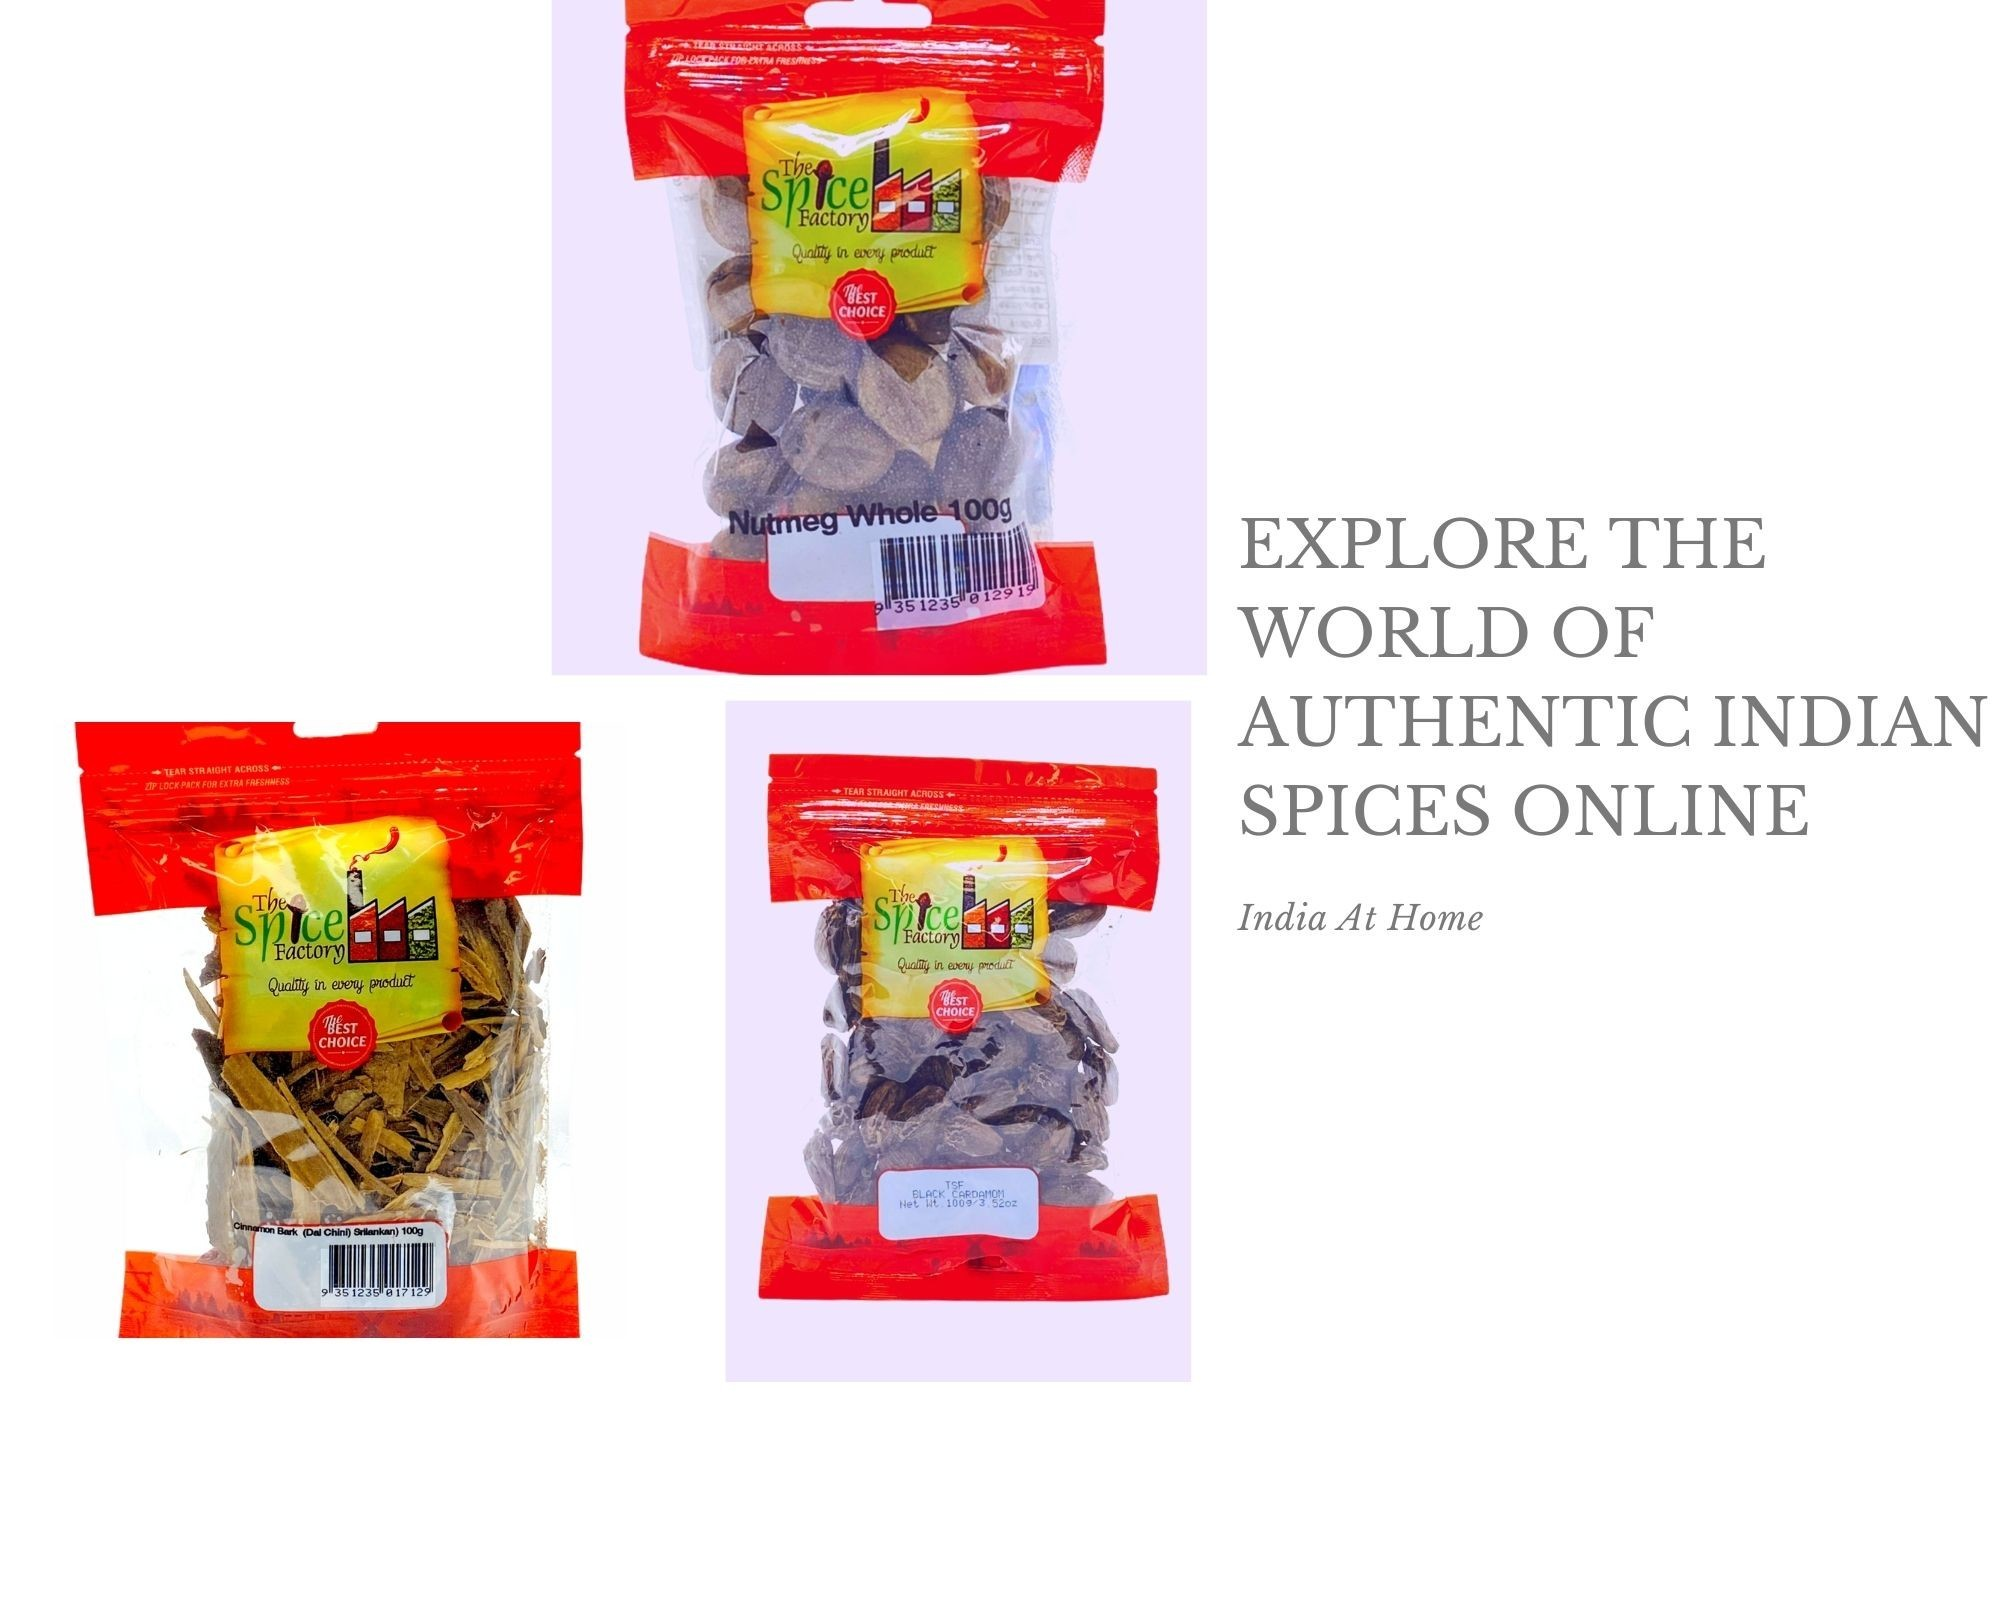 Explore the World of Authentic Indian Spices Online